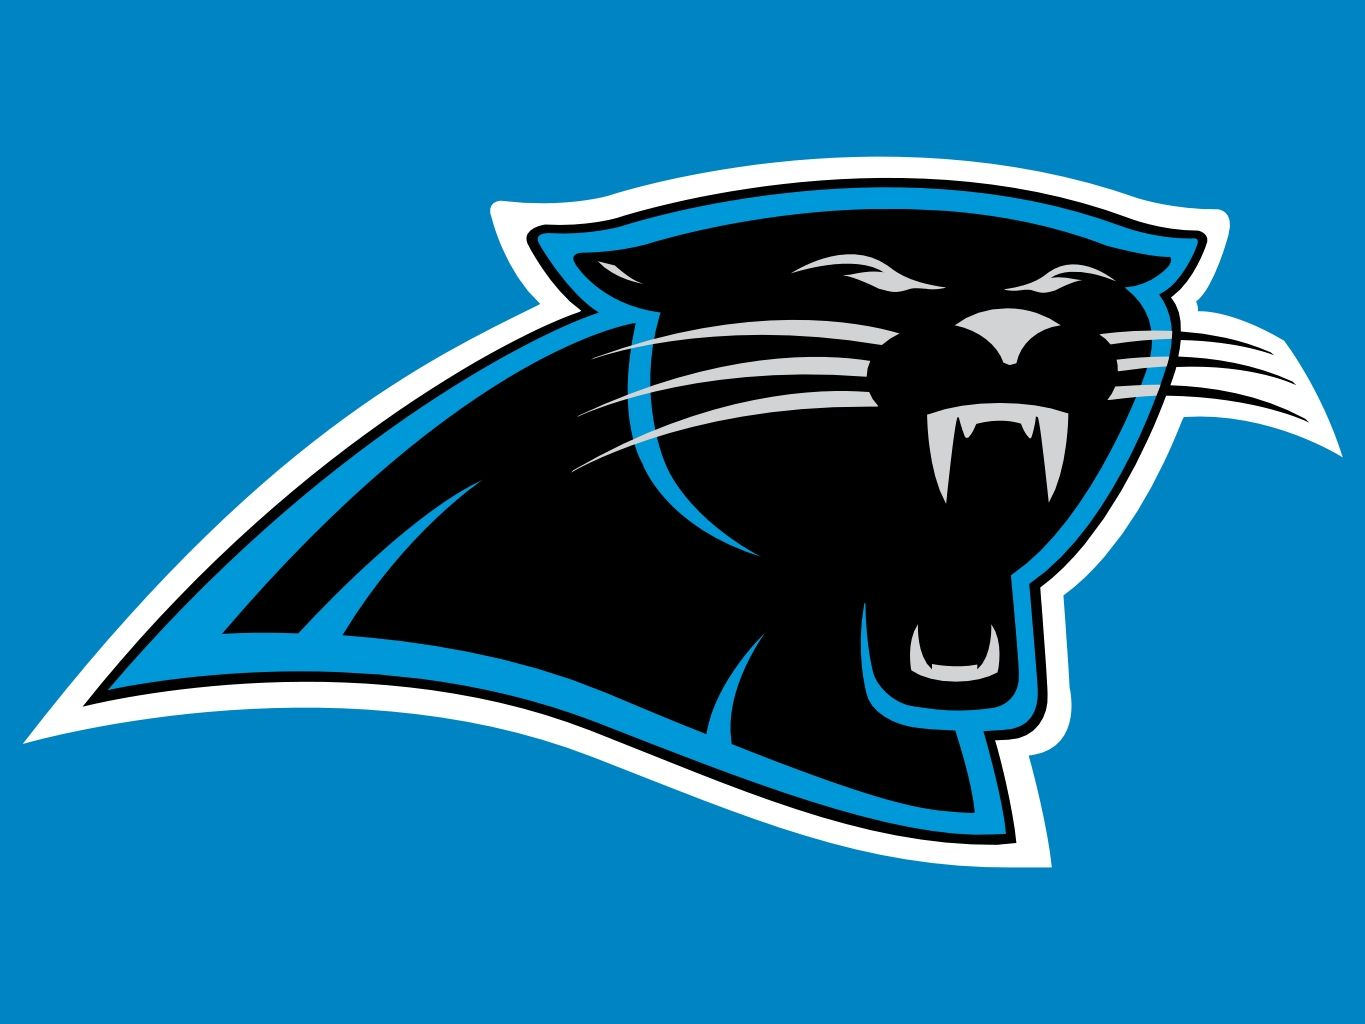 NFL Commentary: The Carolina Panthers, Sleeper In the NFC, or Overrated? |  Nfl carolina panthers, Carolina panthers football, Carolina panthers logo